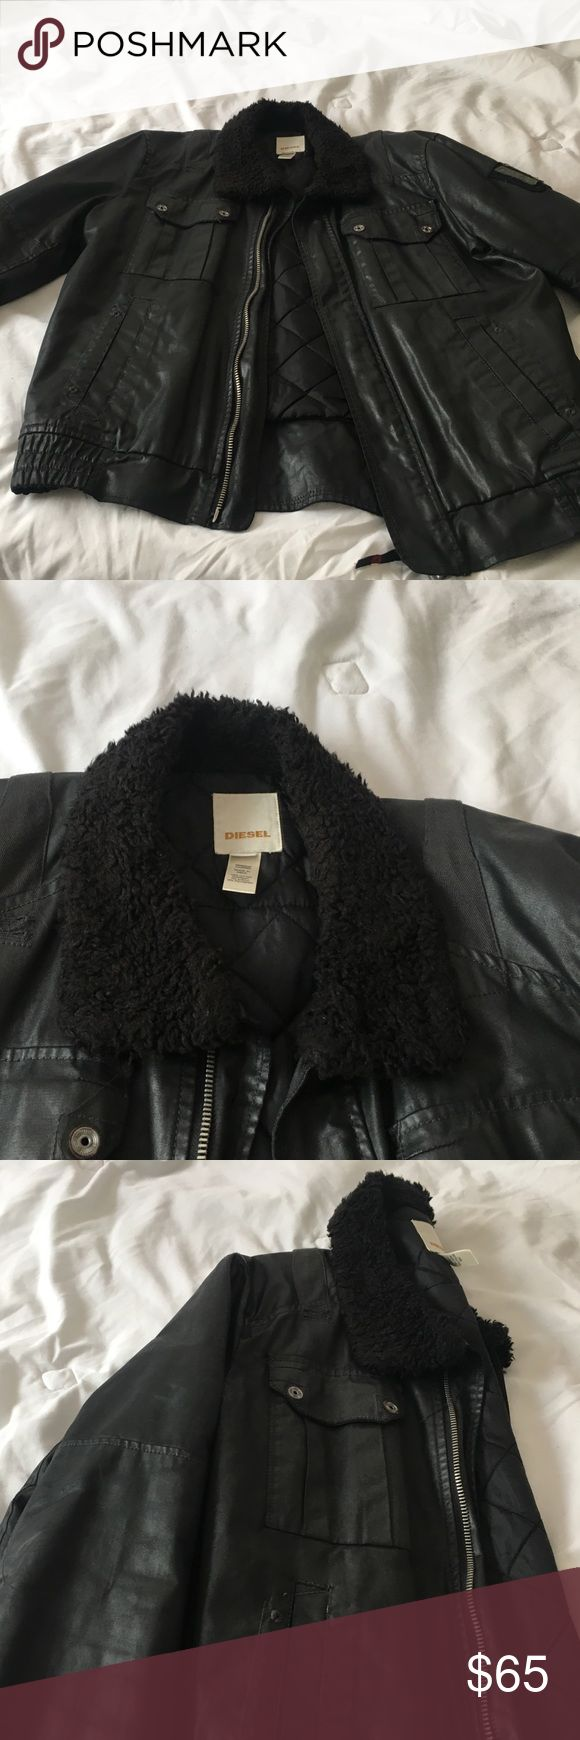 Diesel coat Very nice and warm. In great condition. Fits like a large/medium. Diesel Jackets & Coats